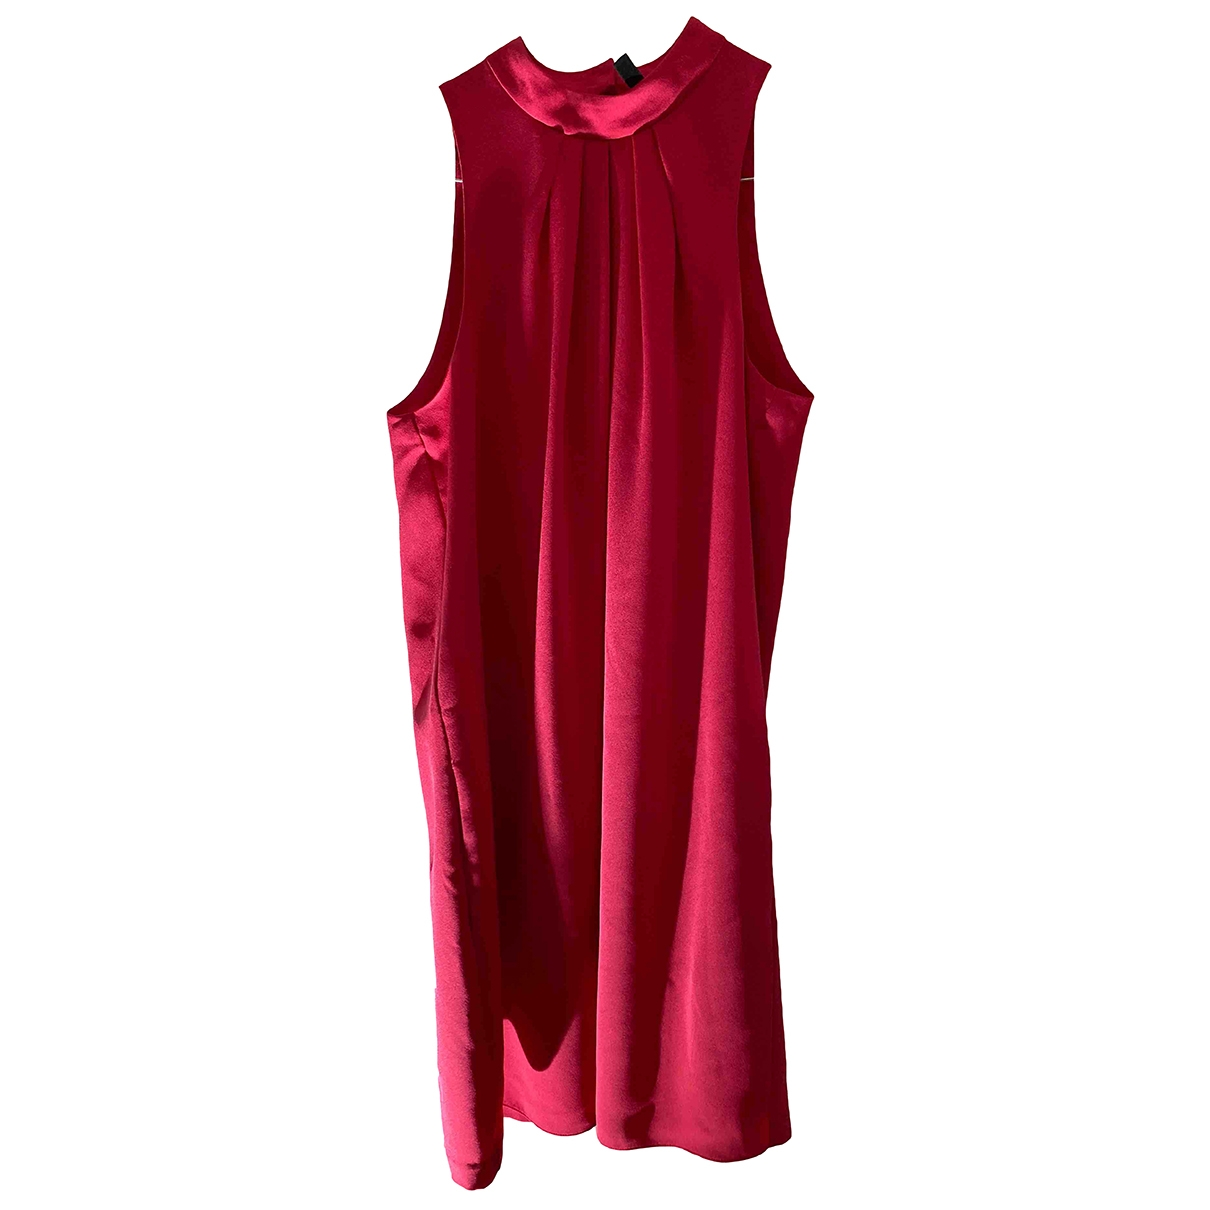 Bcbg Max Azria \N Pink dress for Women 36 IT